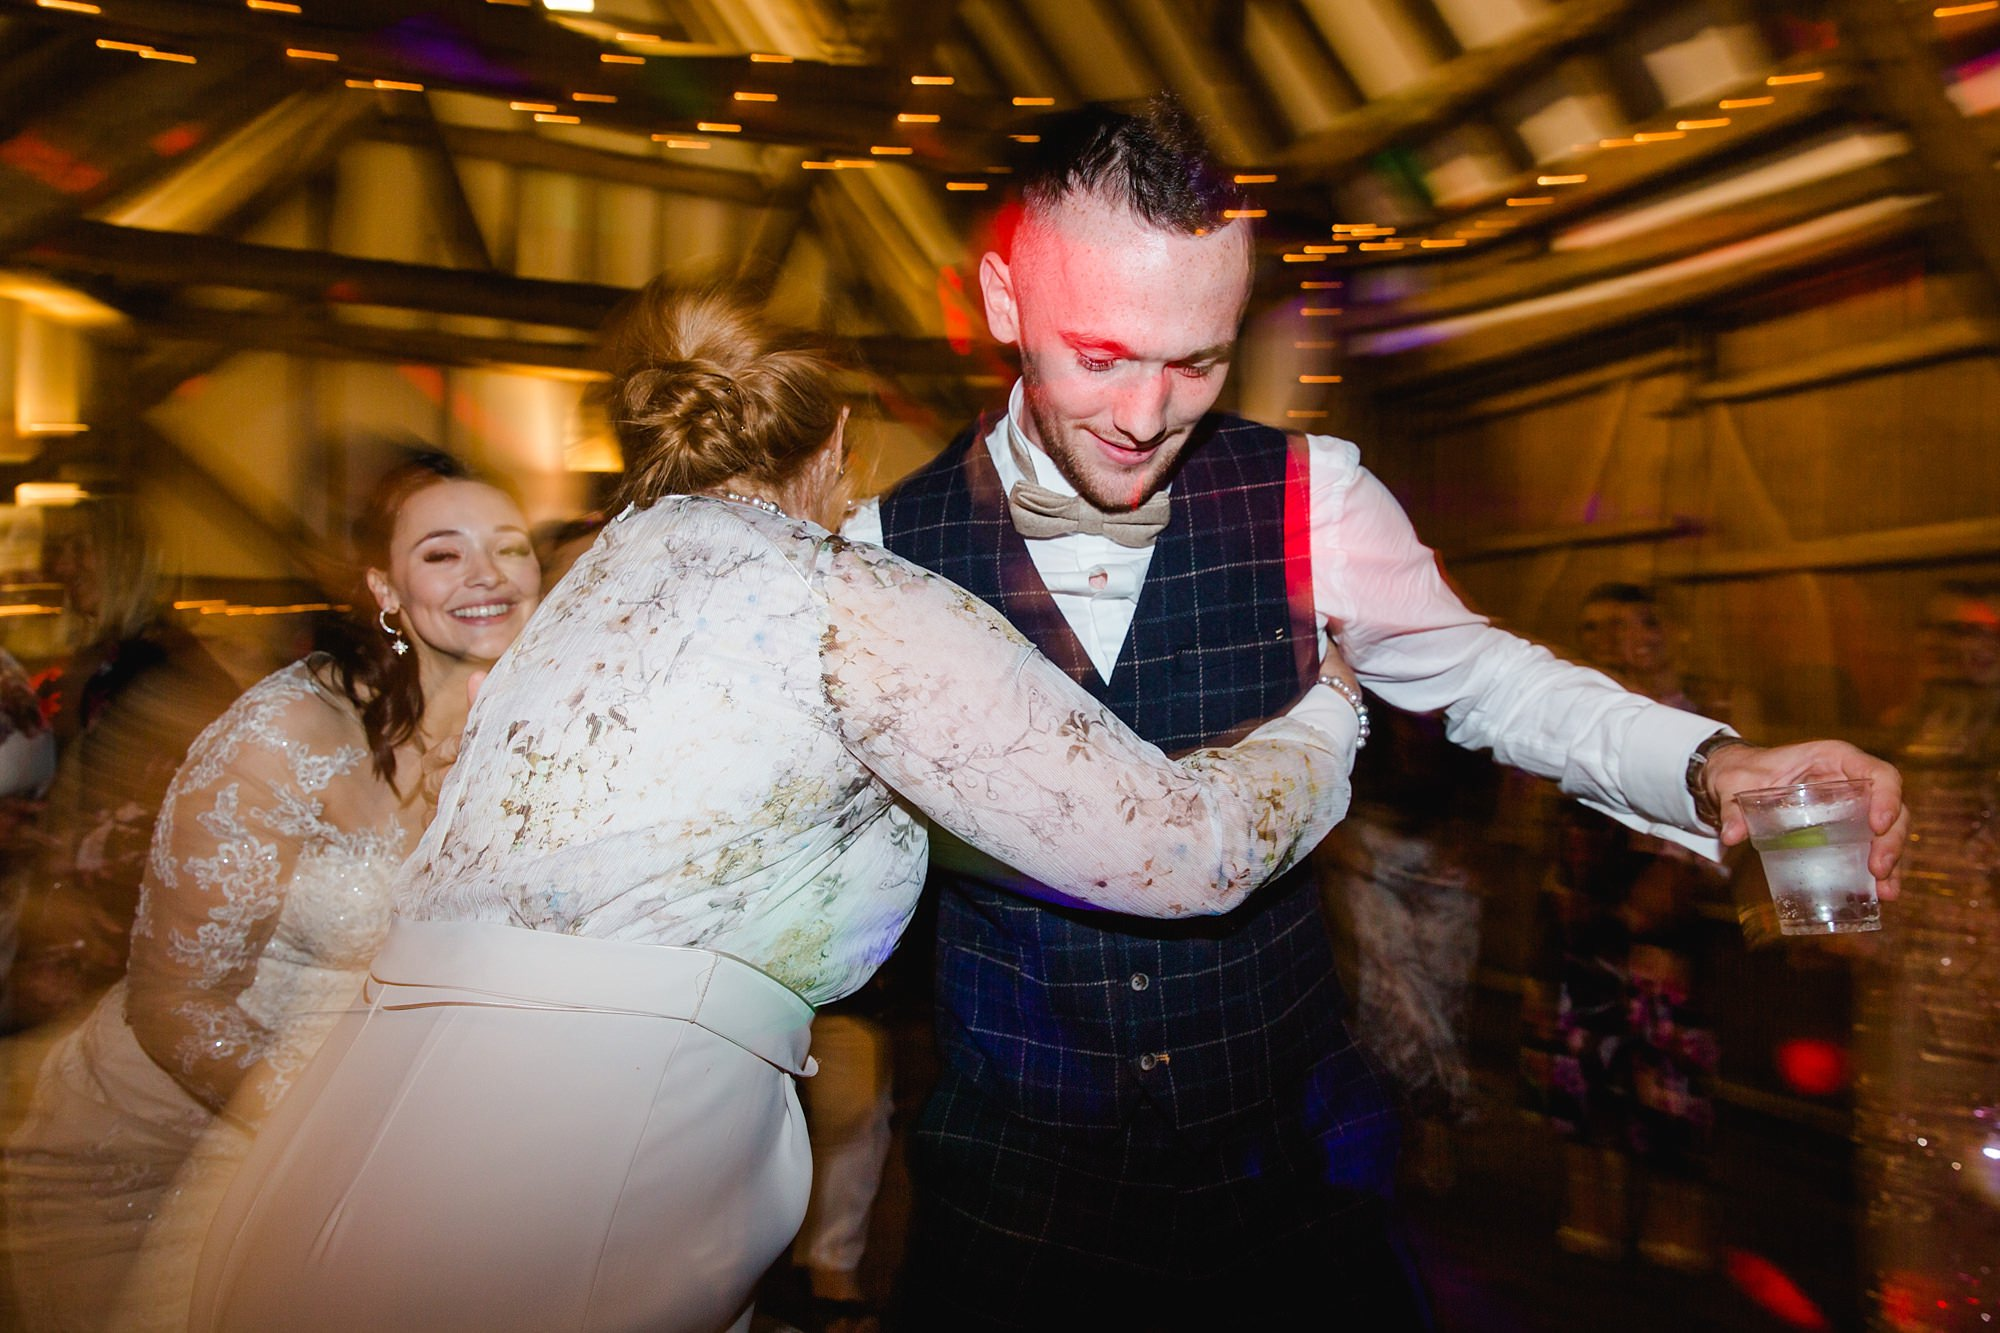 guests dancing together at humanist wedding old greens barn